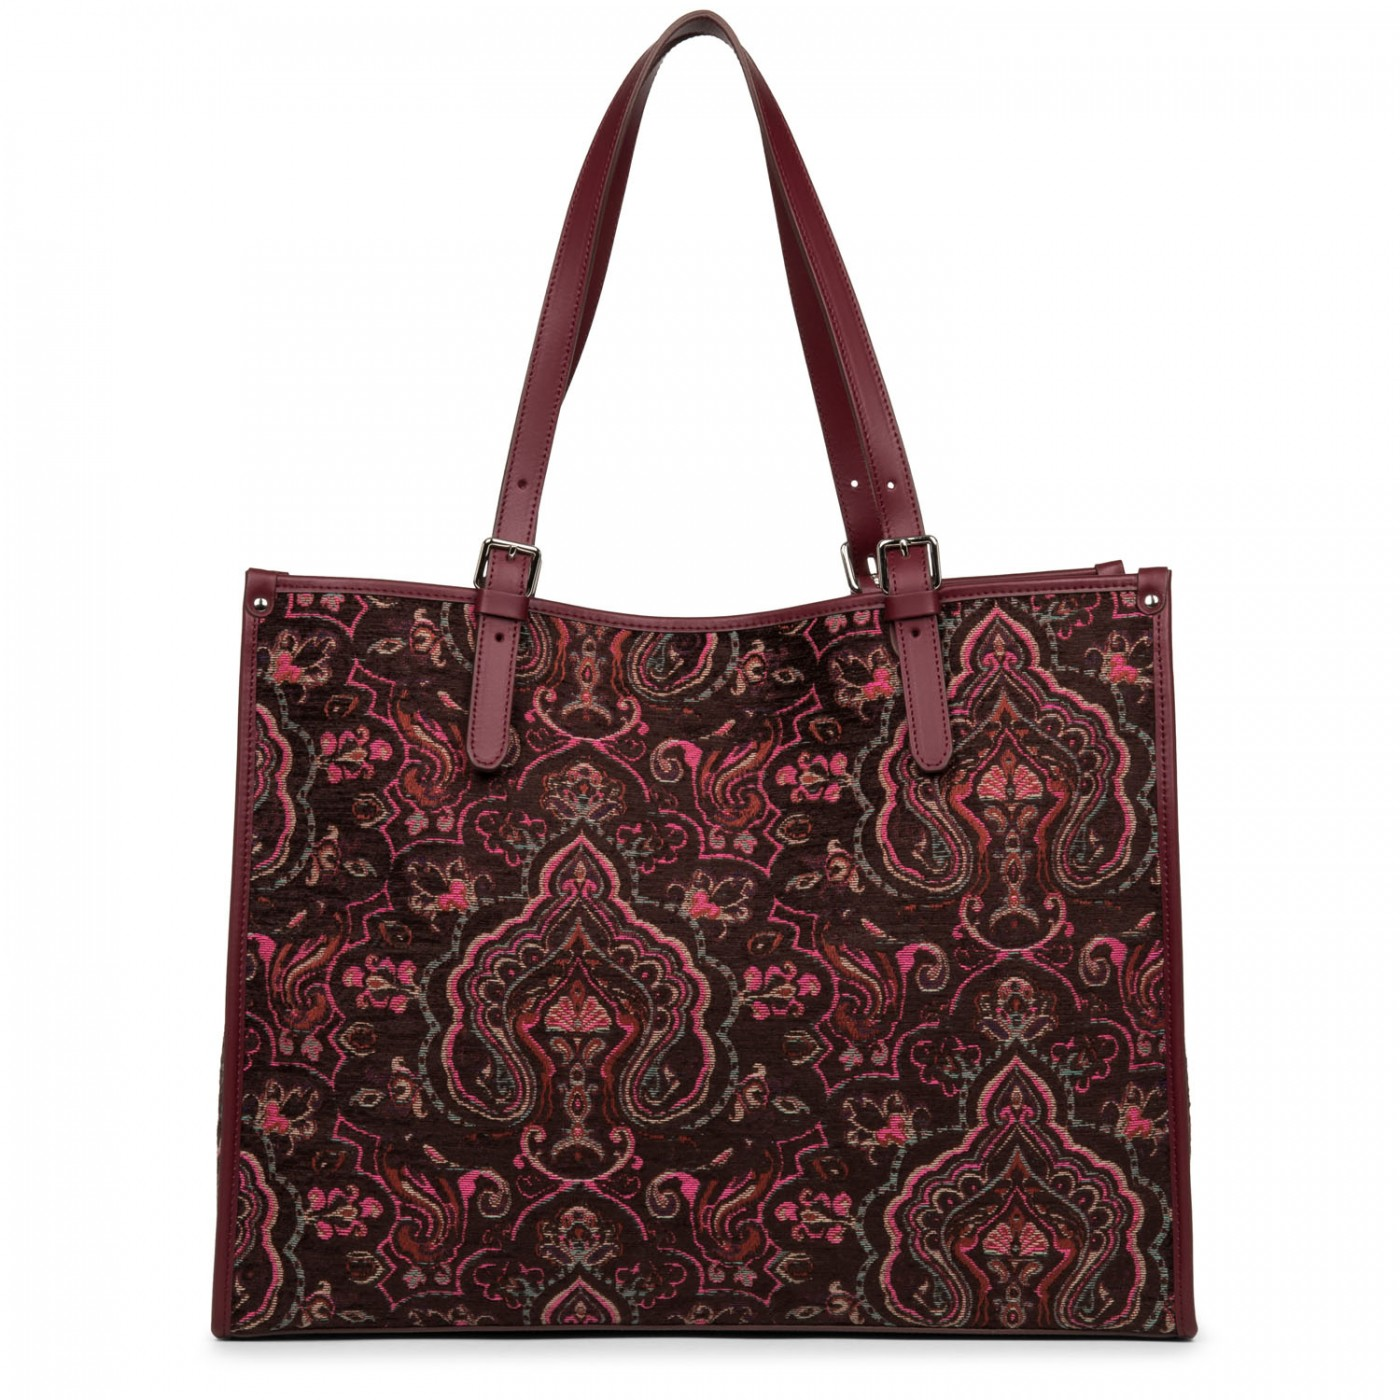 ACTUAL ROCOCO LARGE TOTE